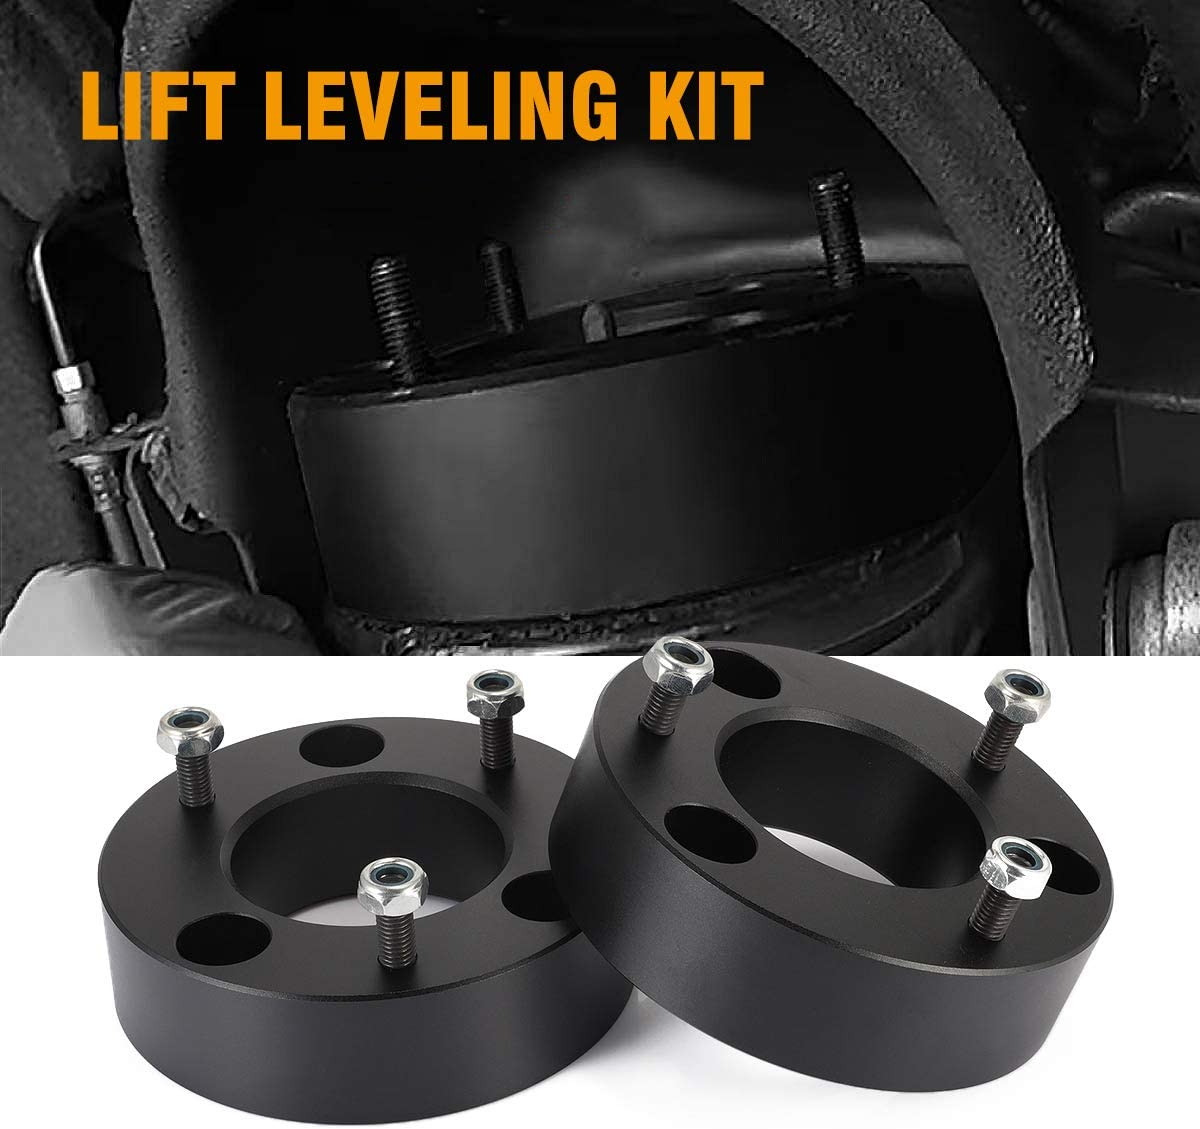 "NEVERLAND 2.5/""Front Leveling Lift Kits For 2004-2019 Ford F150 2WD//4WD Front Strut Spacer Suspension Lift Kits Lift Spacers"